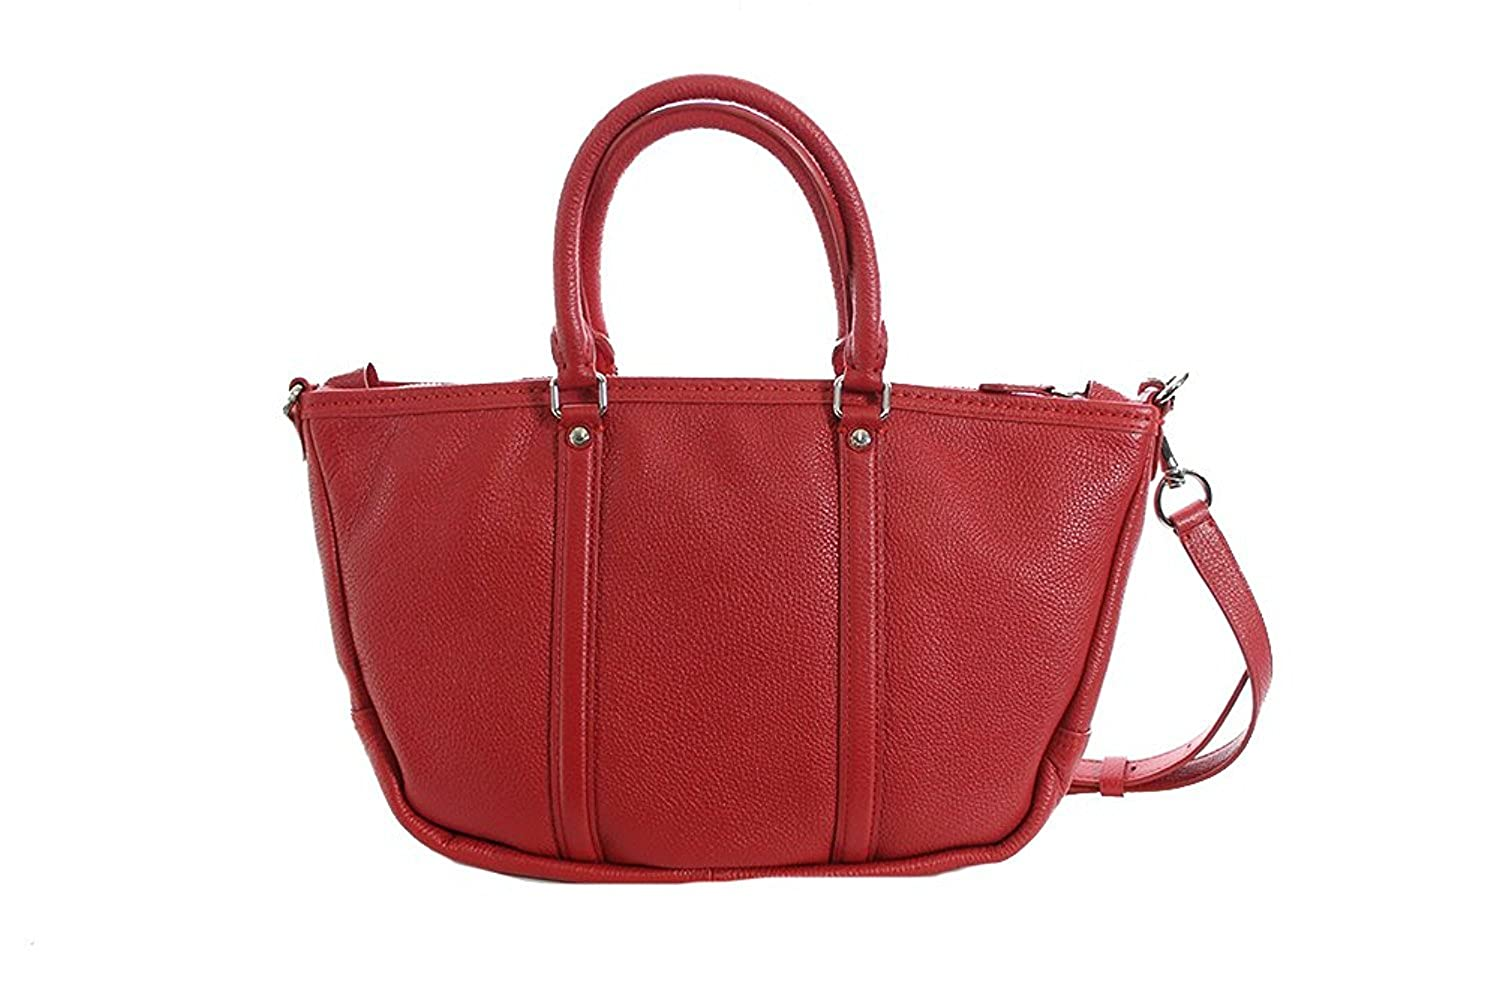 6ee5fe3661 Amazon.com  COACH Women s Pebbled Small Coach Central Satchel Sv True Red  Handbag  Shoes